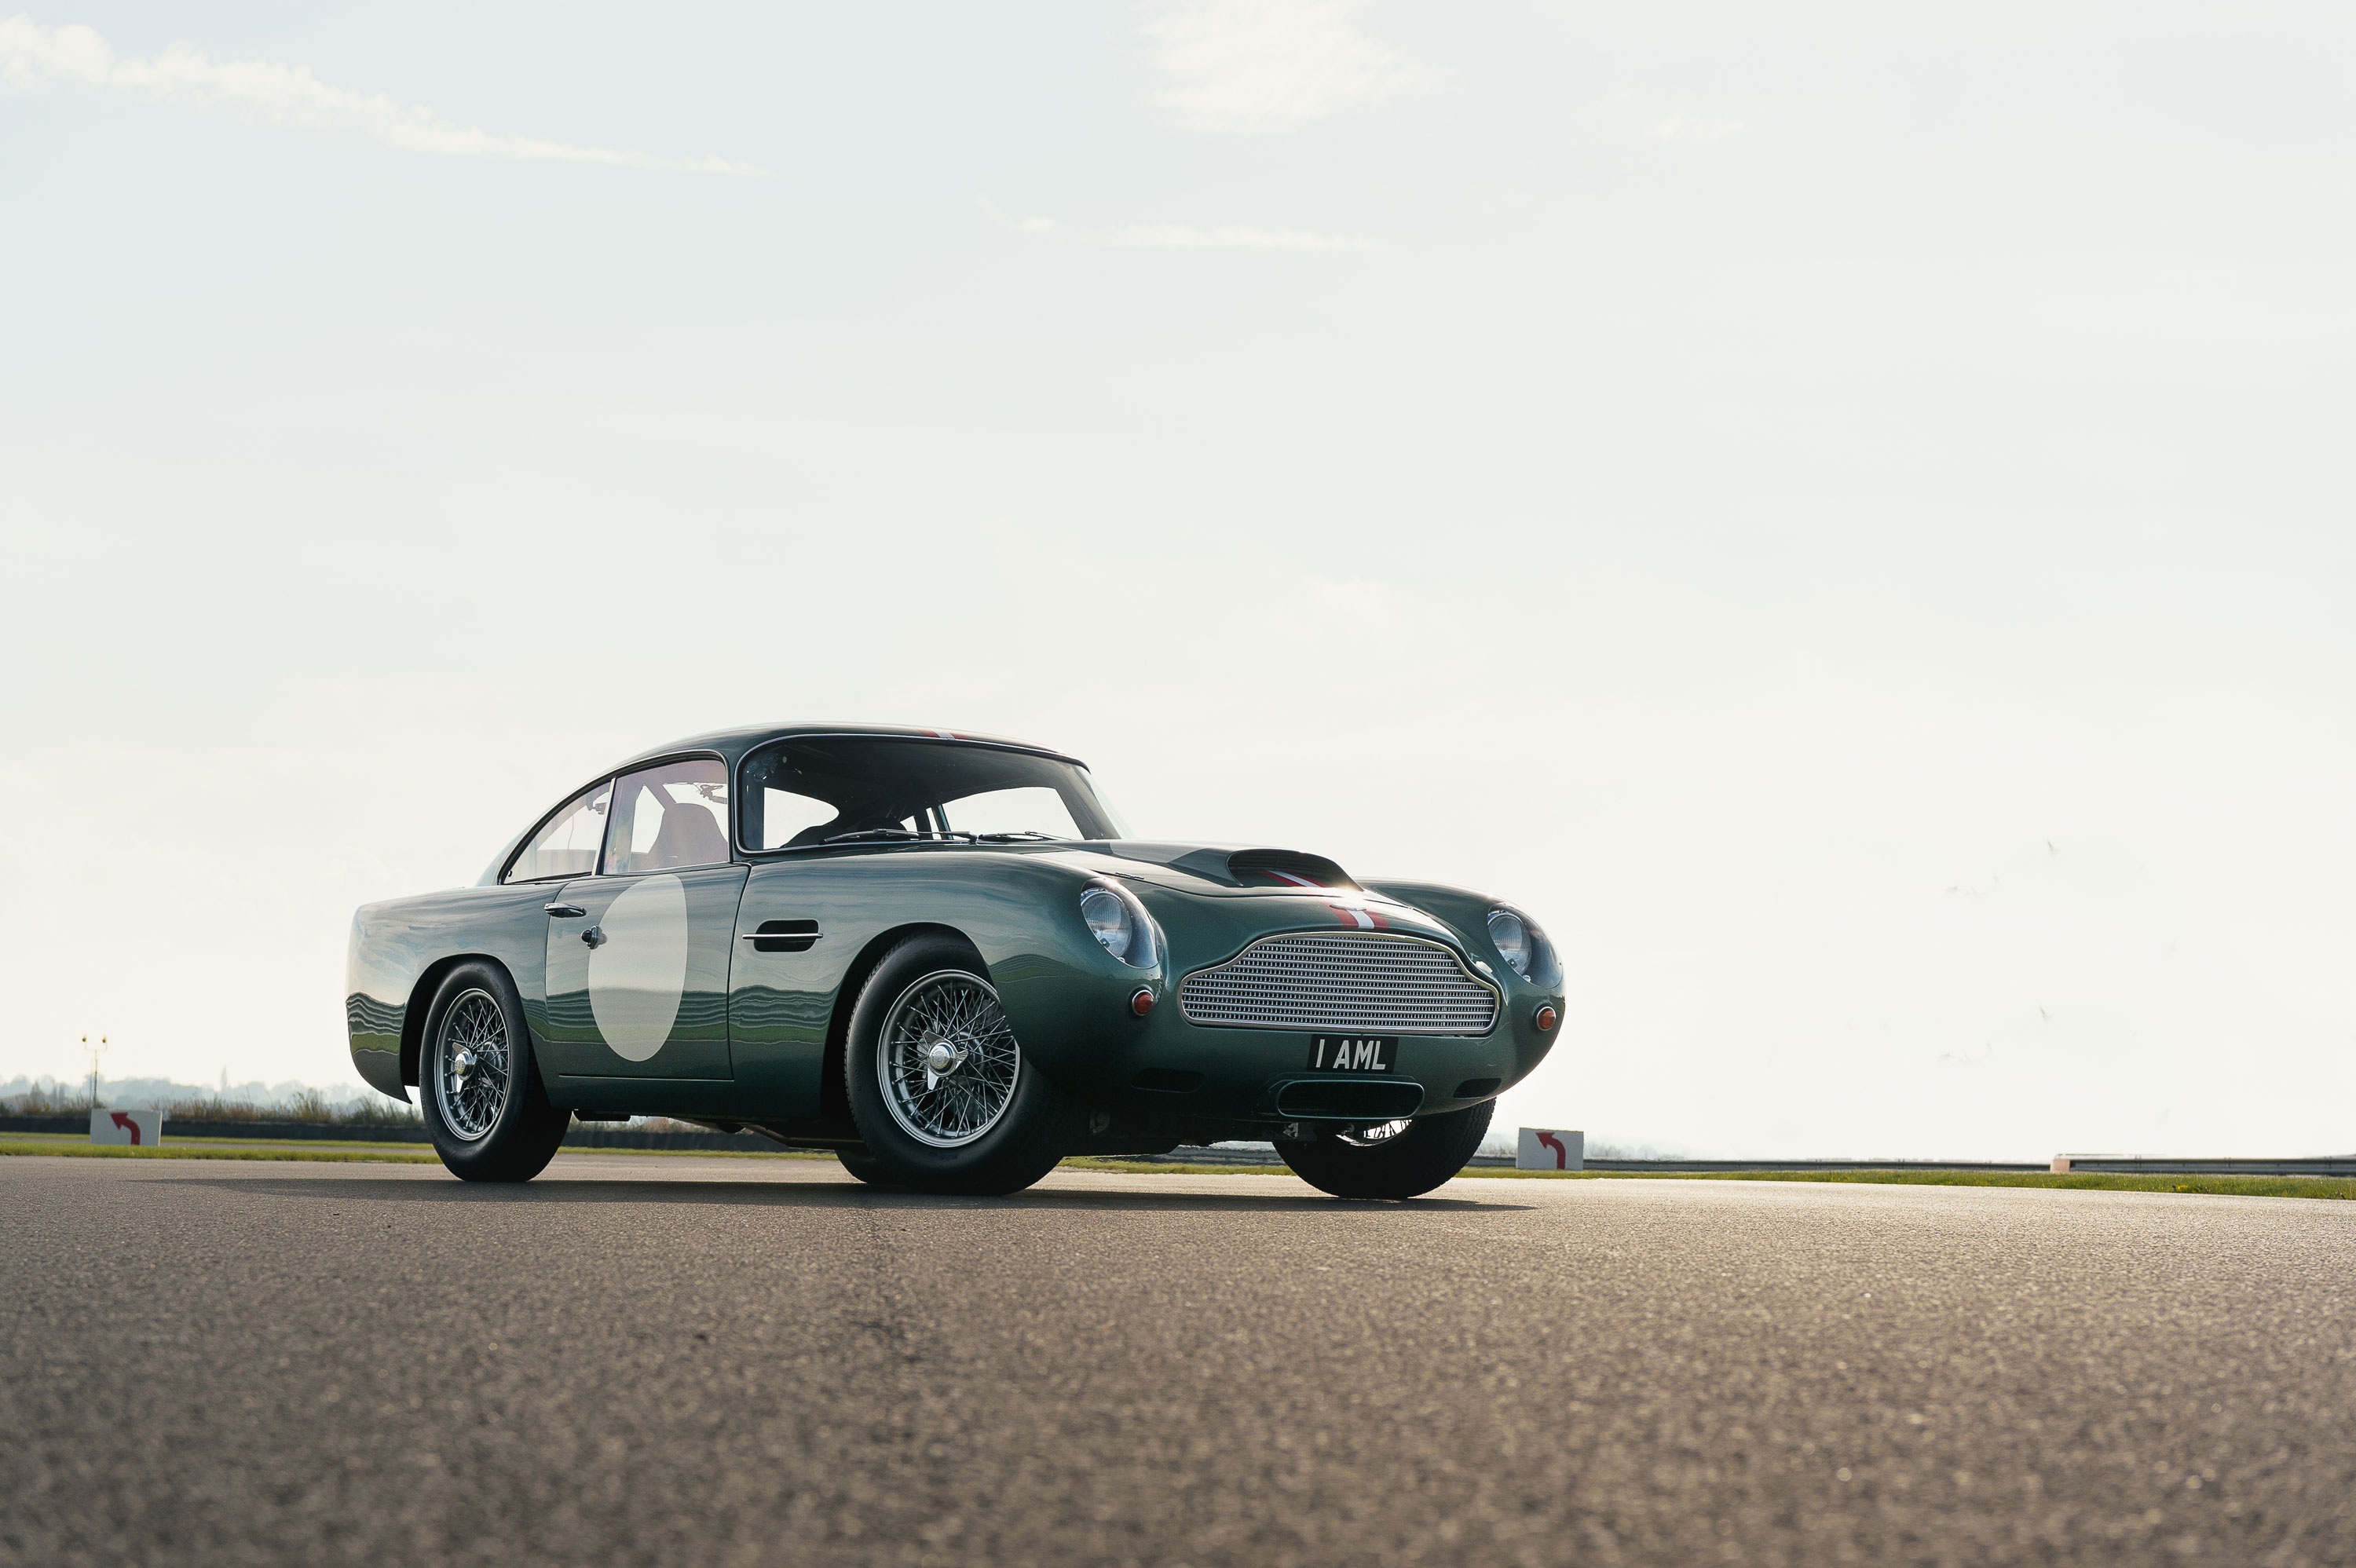 1959 Aston Martin DB4 GT low front 3/4